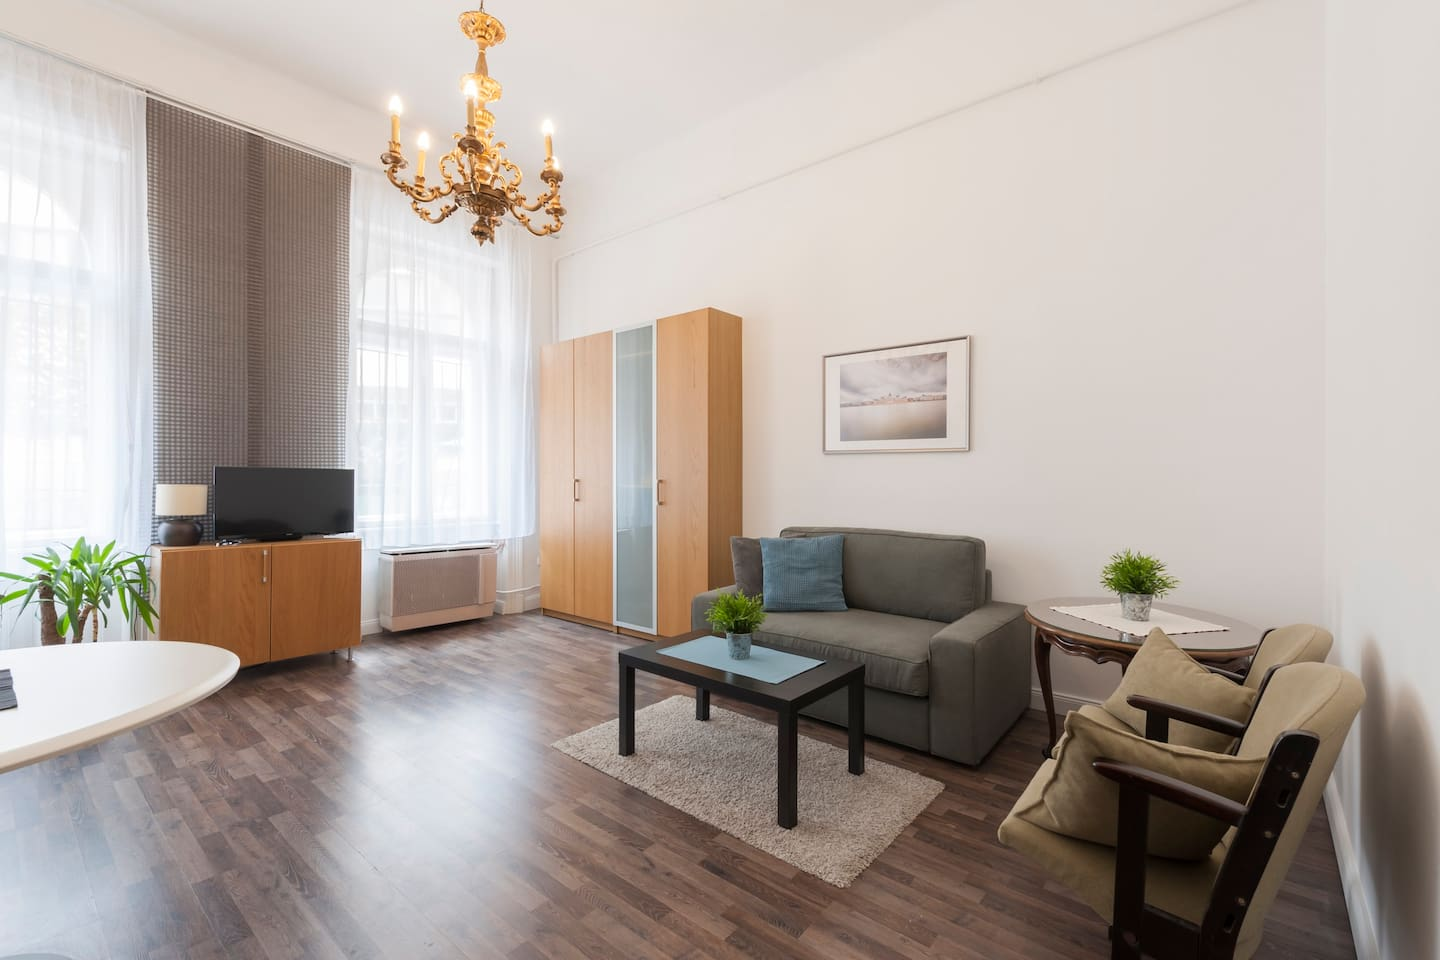 new york café apt in city center apartments for rent in budapest